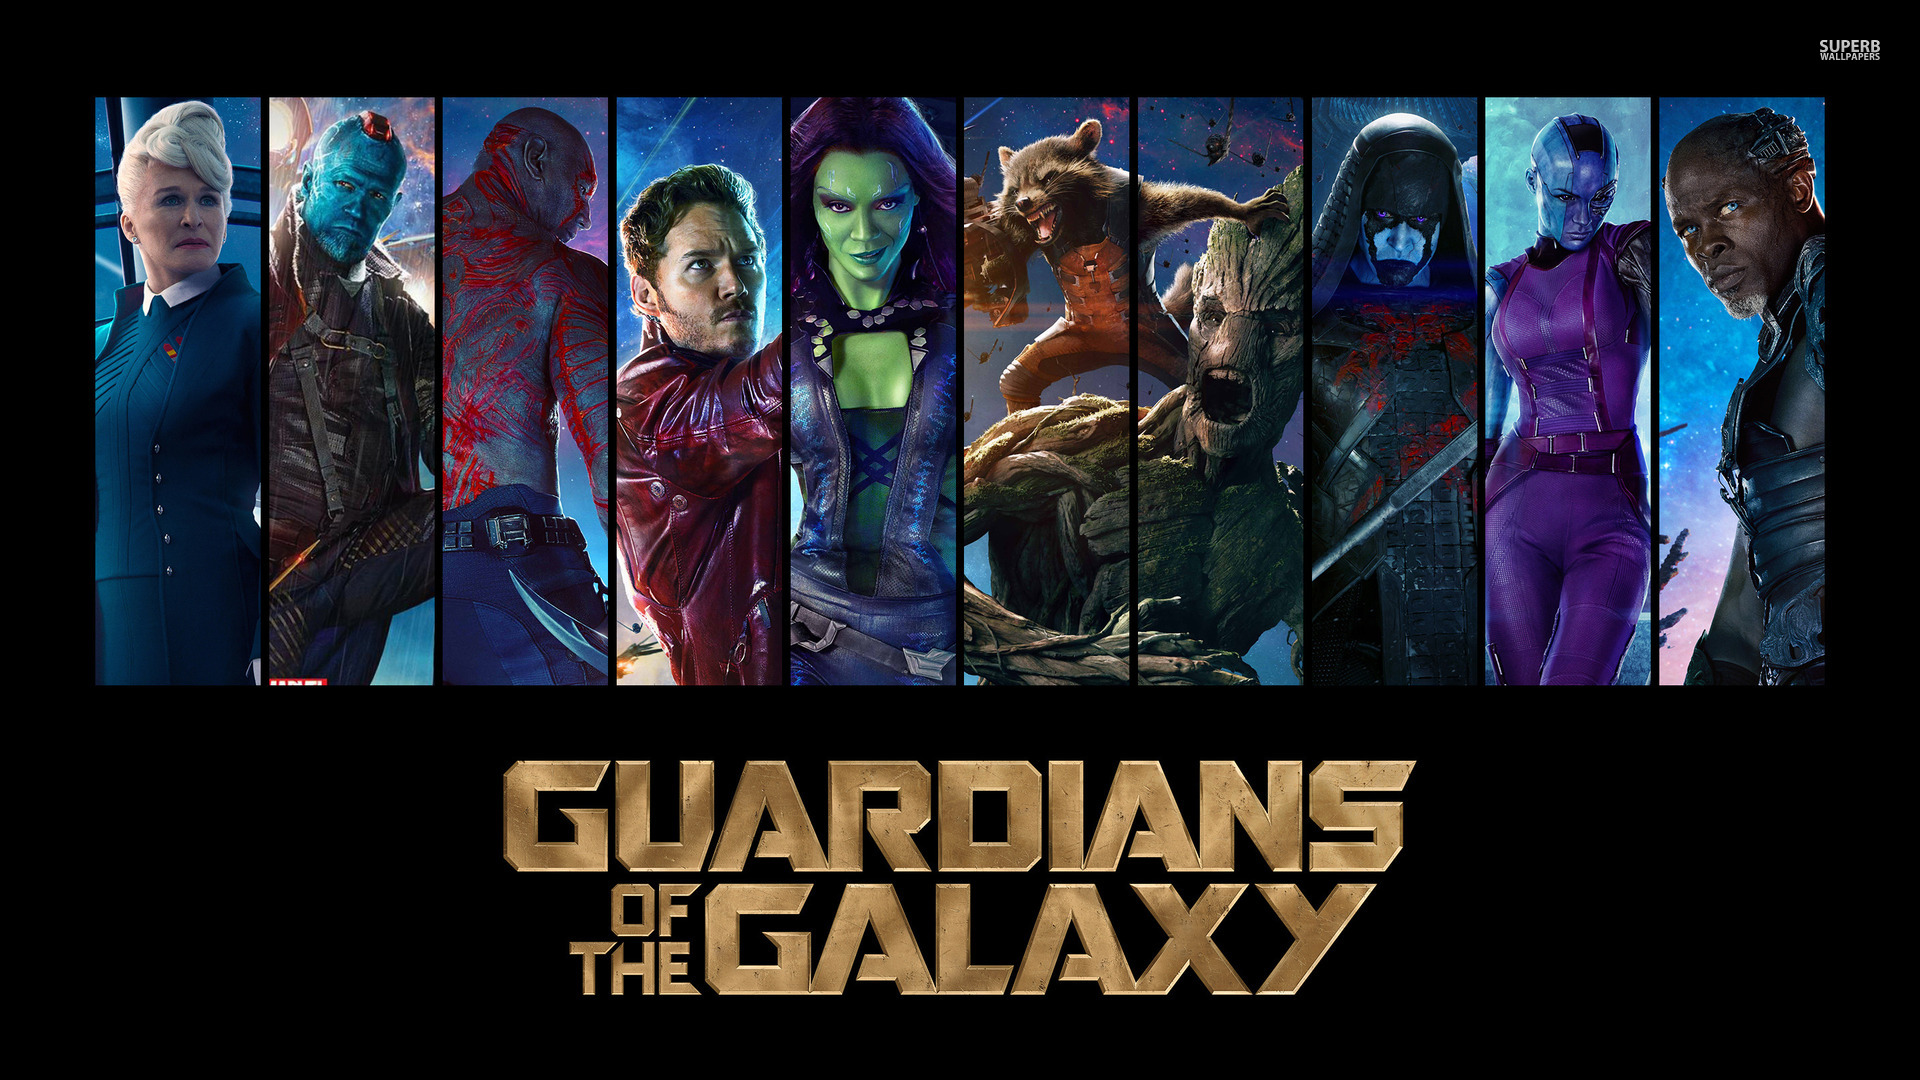 Guardians of the Galaxy HD Photo WallpaperMovie Powericare com 265